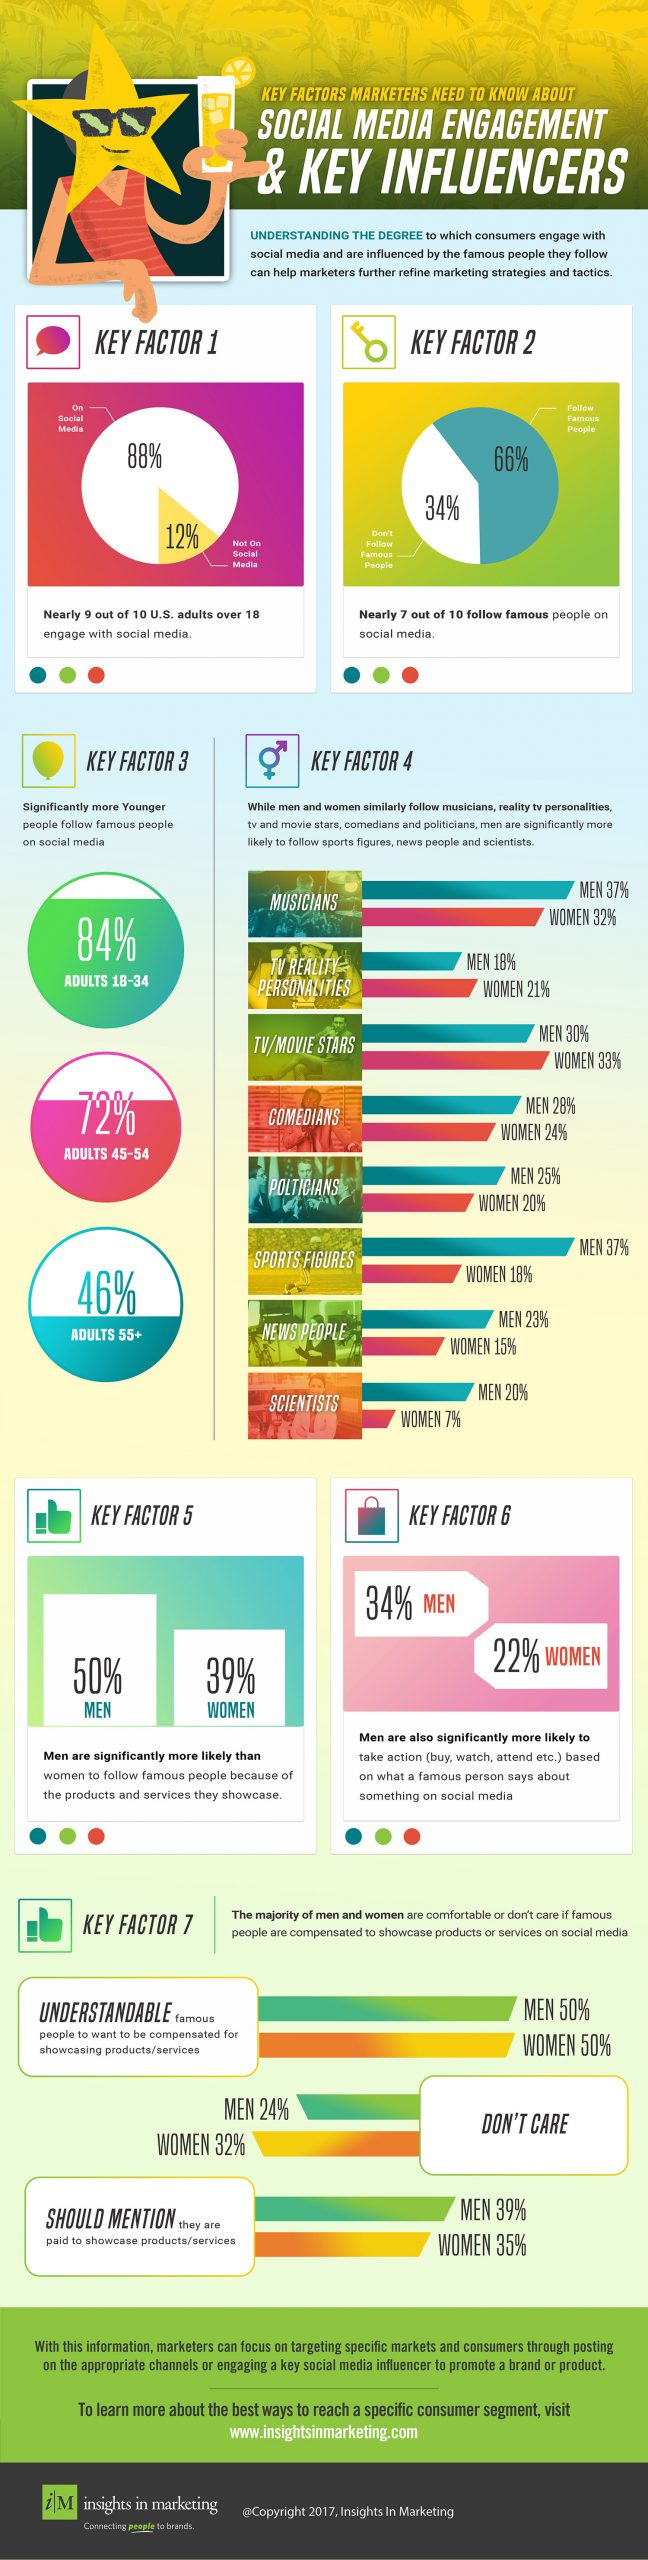 Infographic: What You Should Know About Social Media Influencers & Engagement